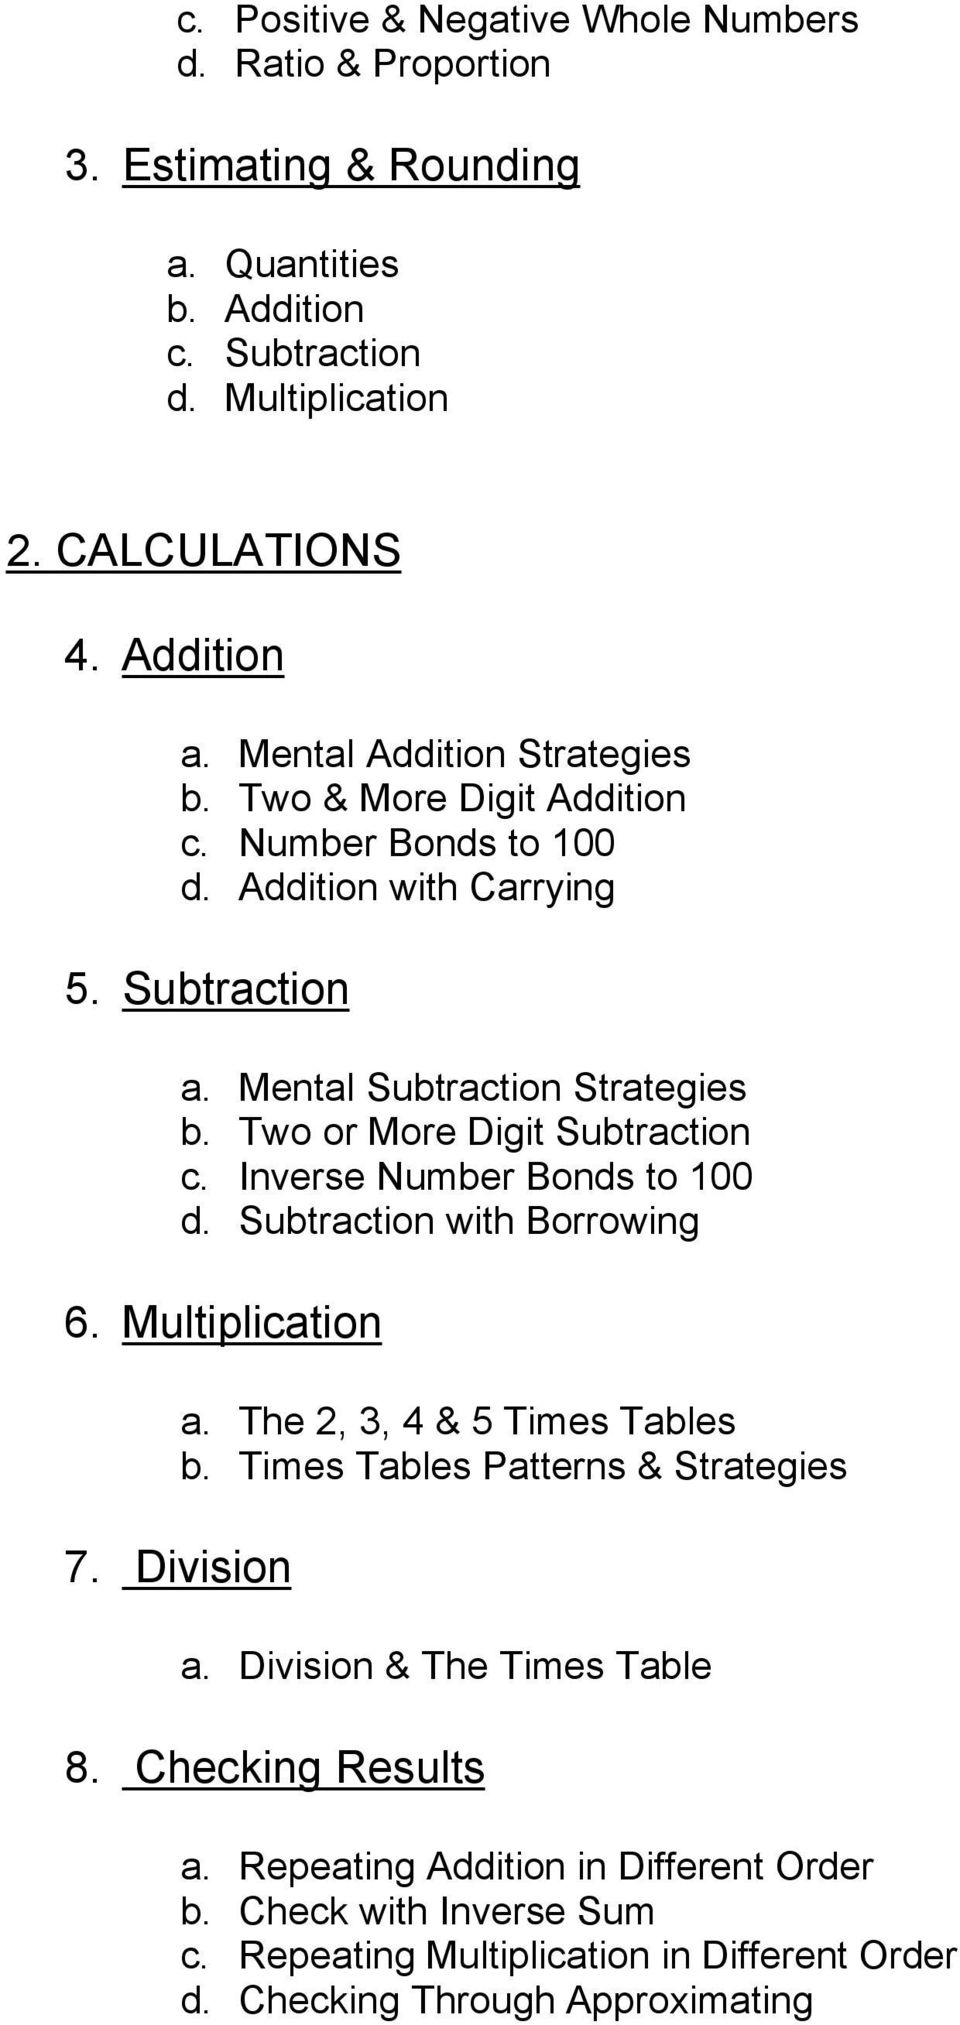 Two or More Digit Subtraction c. Inverse Number Bonds to 100 d. Subtraction with Borrowing 6. Multiplication a. The 2, 3, 4 & 5 Times Tables b.